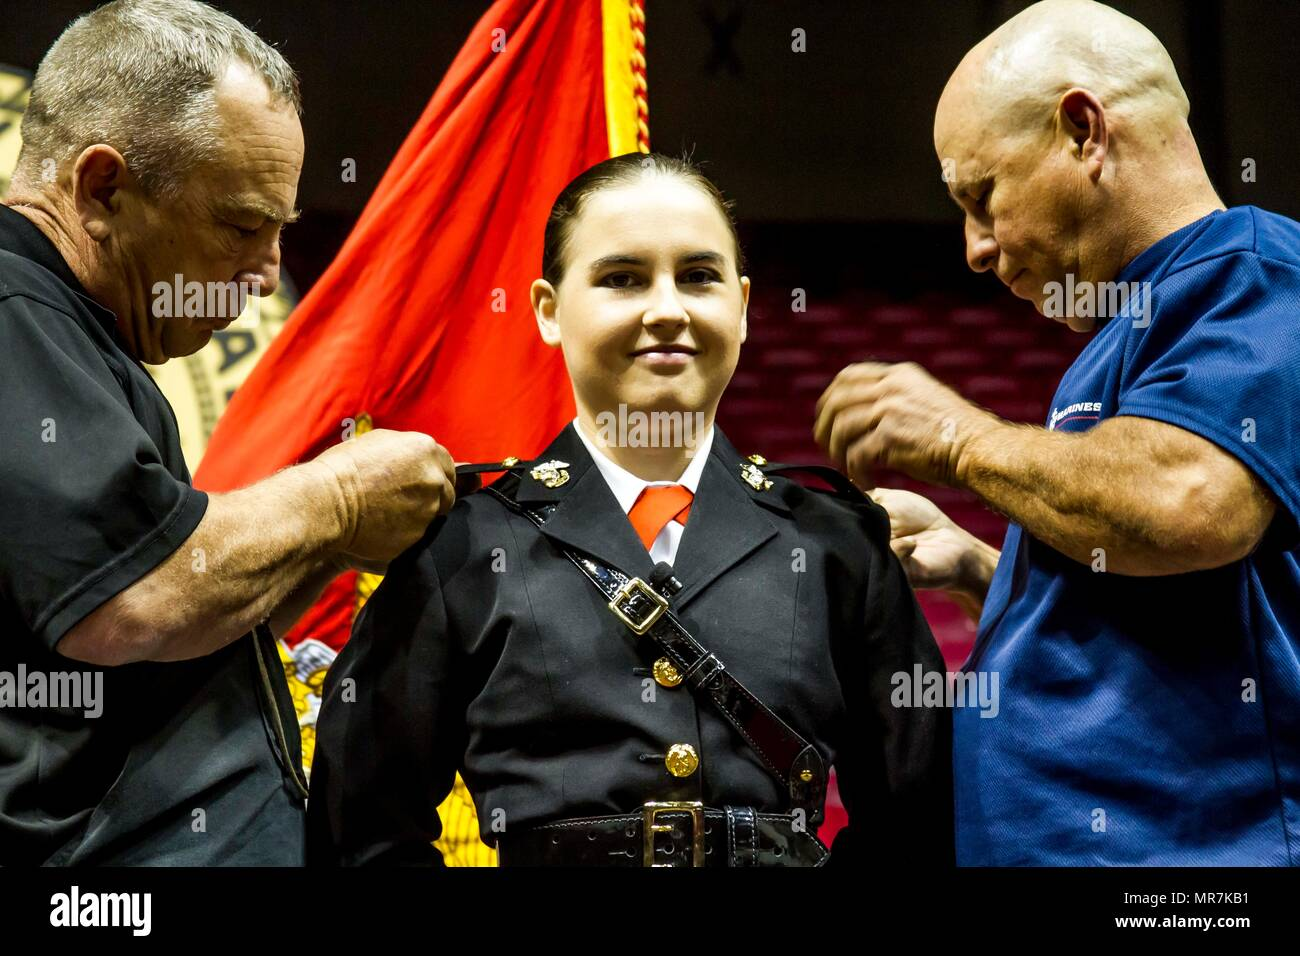 "Mary Sanders gets pinned to the rank of second lieutenant by her father and uncle during her commissioning ceremony at Coleman Coliseum, May 12, 2017. Sanders is a recent graduate of Alabama State University and attended Platoon Leaders Course and Officer Candidate School before being commissioned. ""After a couple of weeks I saw how the Marine Corps worked and was hooked. I was so inspired and motivated that if I had any doubts before, they were gone. This was something I wanted to be a part of."" (U.S. Marine Corps photo by Cpl. Krista James/Released) - Stock Image"